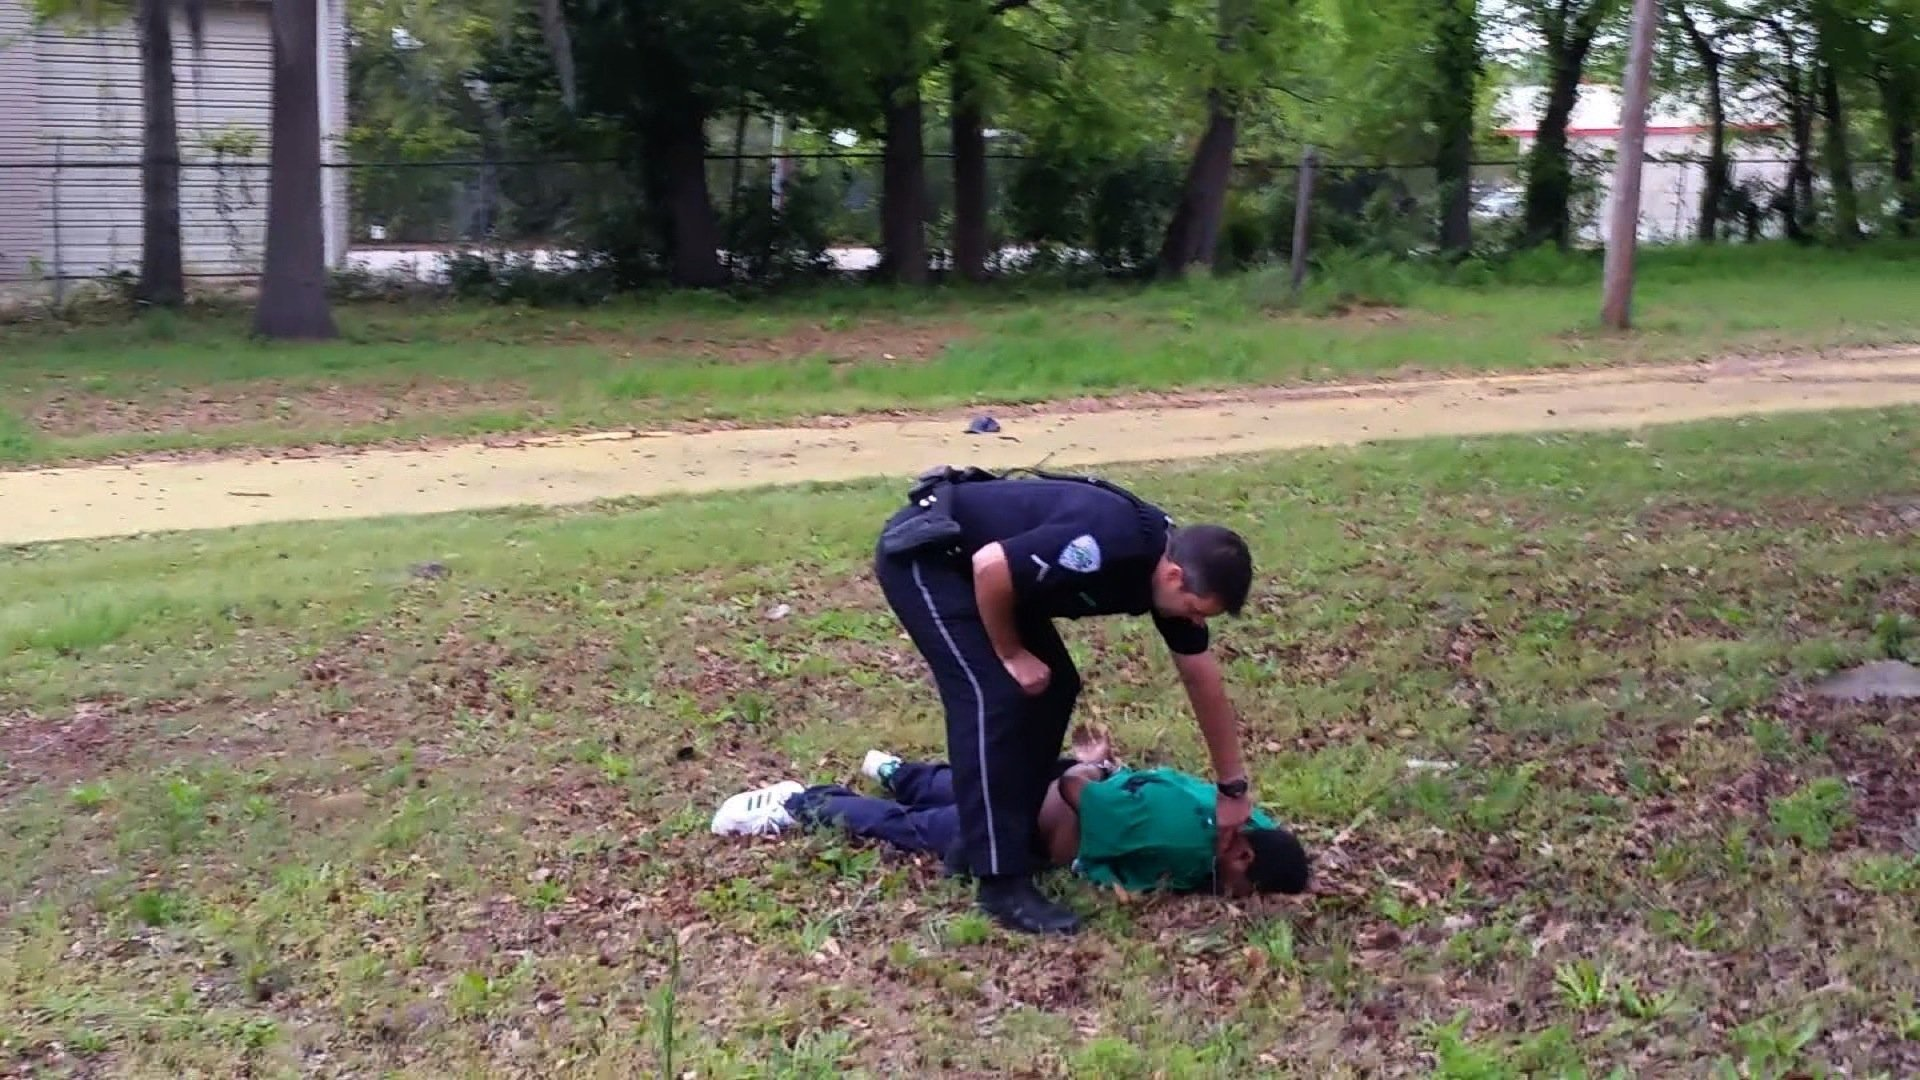 Officer Who Shot Walter Scott Pleads Guilty & May Face A Prison Sentence